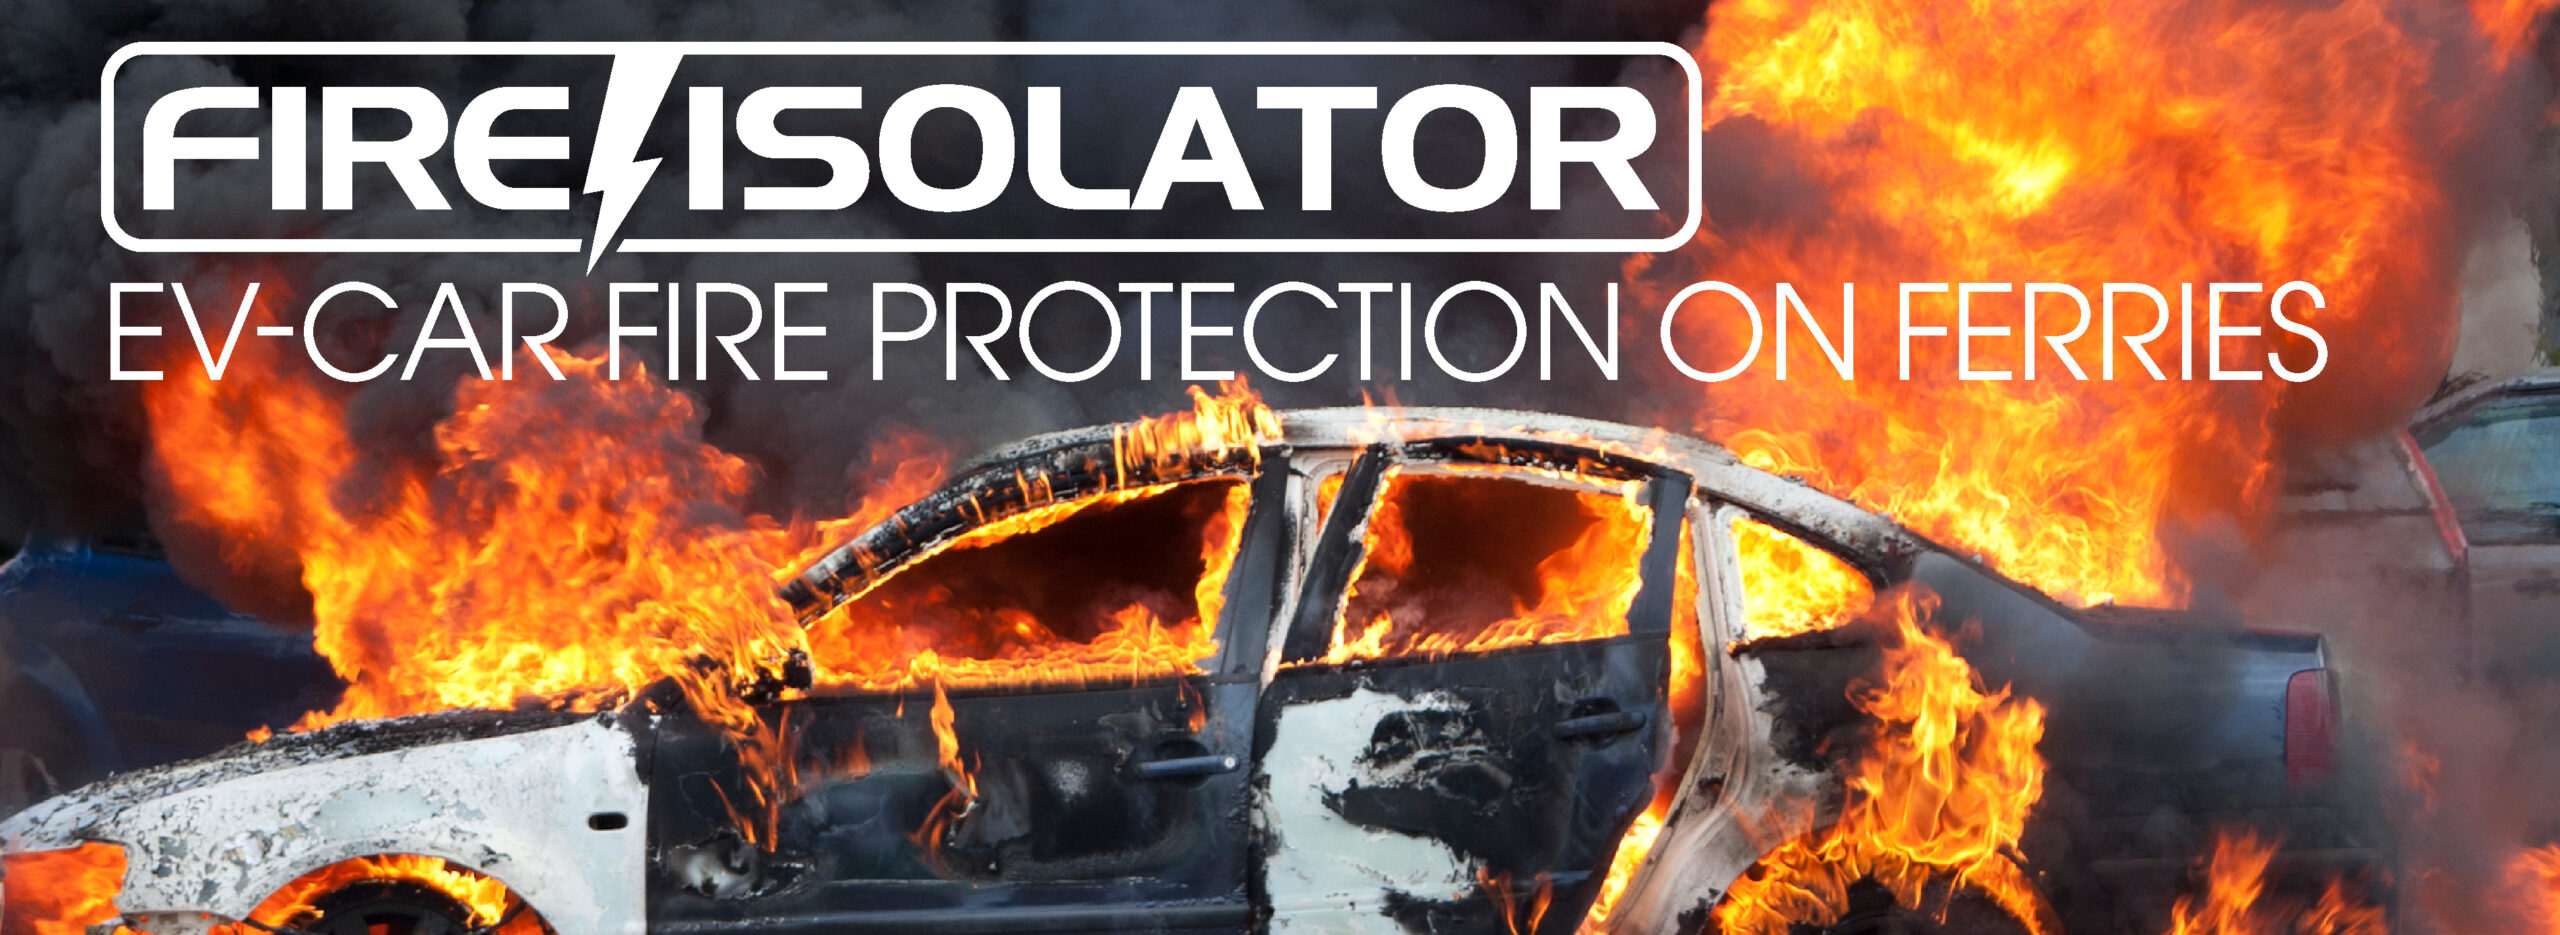 EV Fire Isolator by t-ISS Safety Suppliers